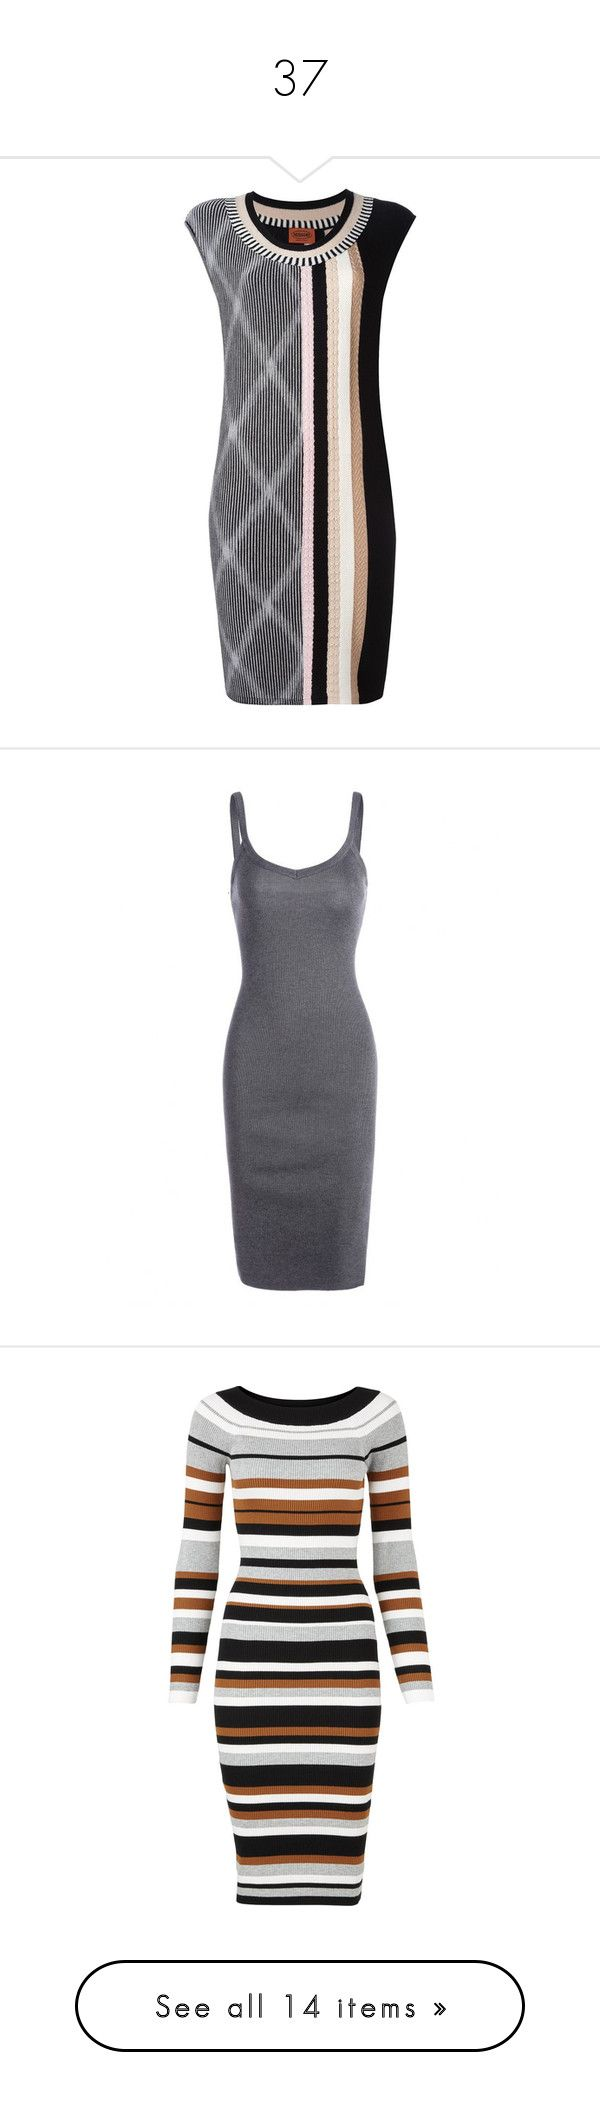 """""""37"""" by sunshane ❤ liked on Polyvore featuring dresses, multicolored dress, no sleeve dress, sleeveless dress, missoni dress, multi-color dresses, gray dress, grey dresses, grey cami and gray sheath dress"""